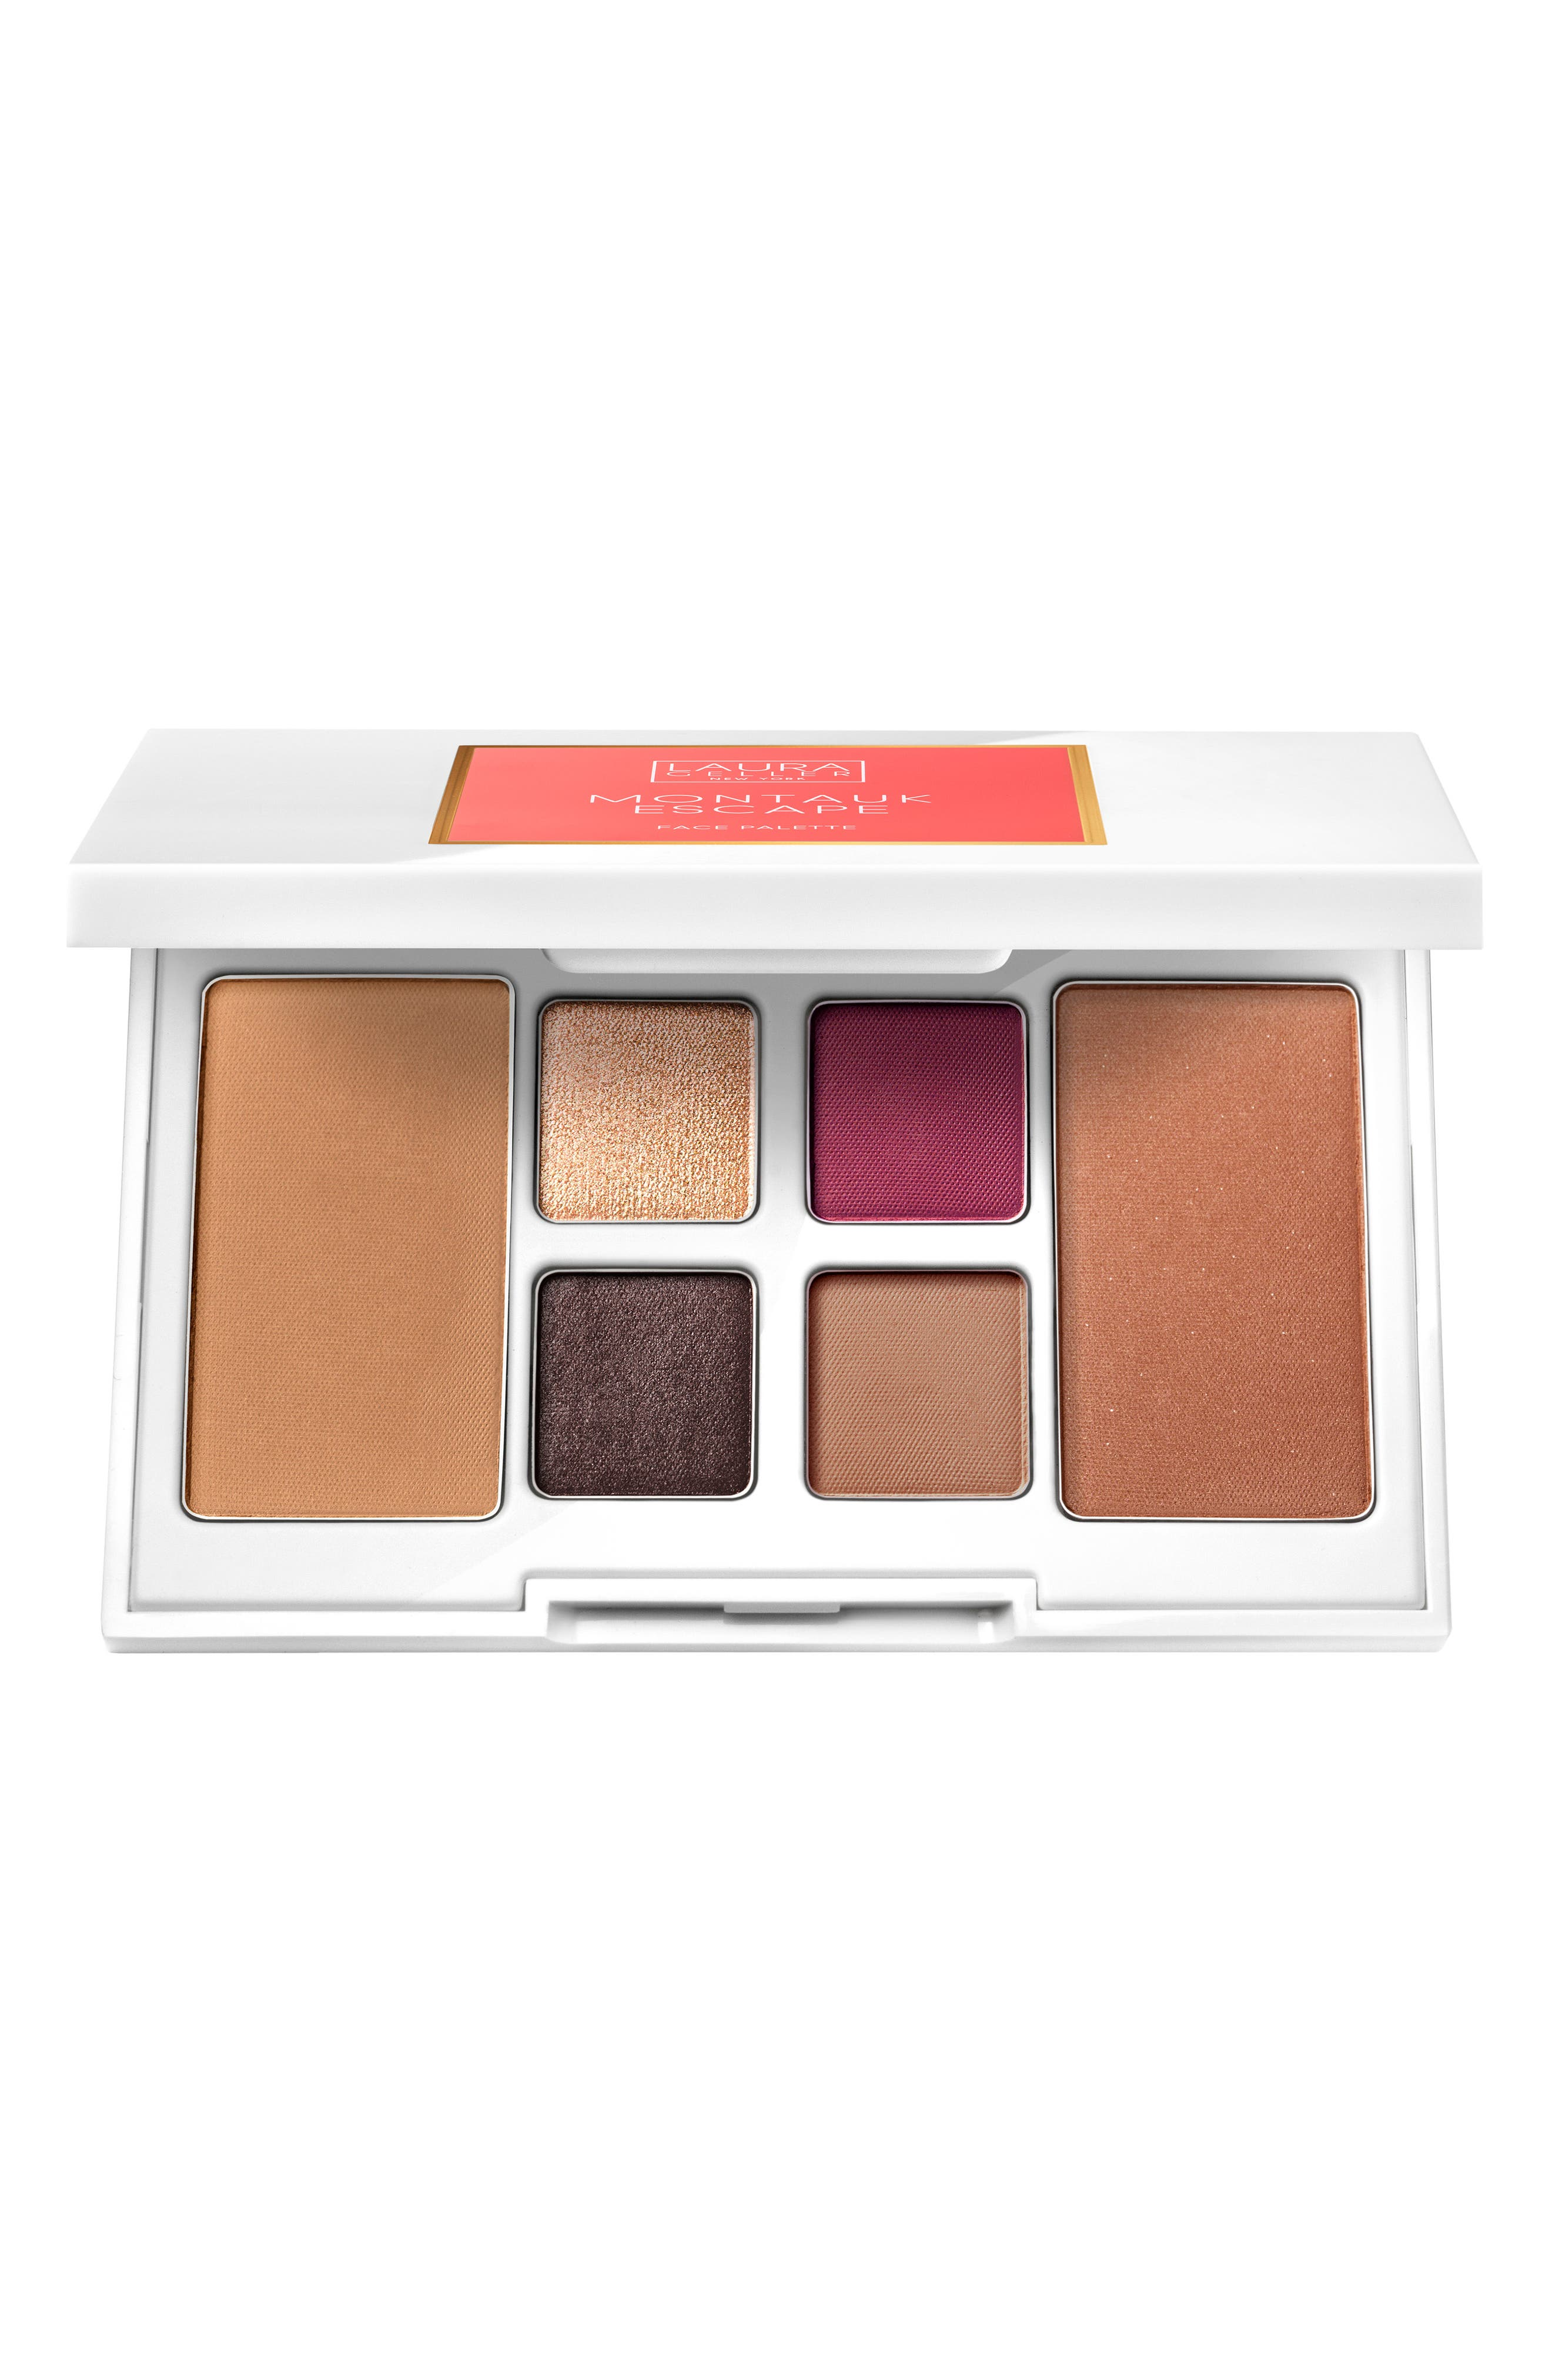 Montauk Escape Face Palette,                         Main,                         color, No Color